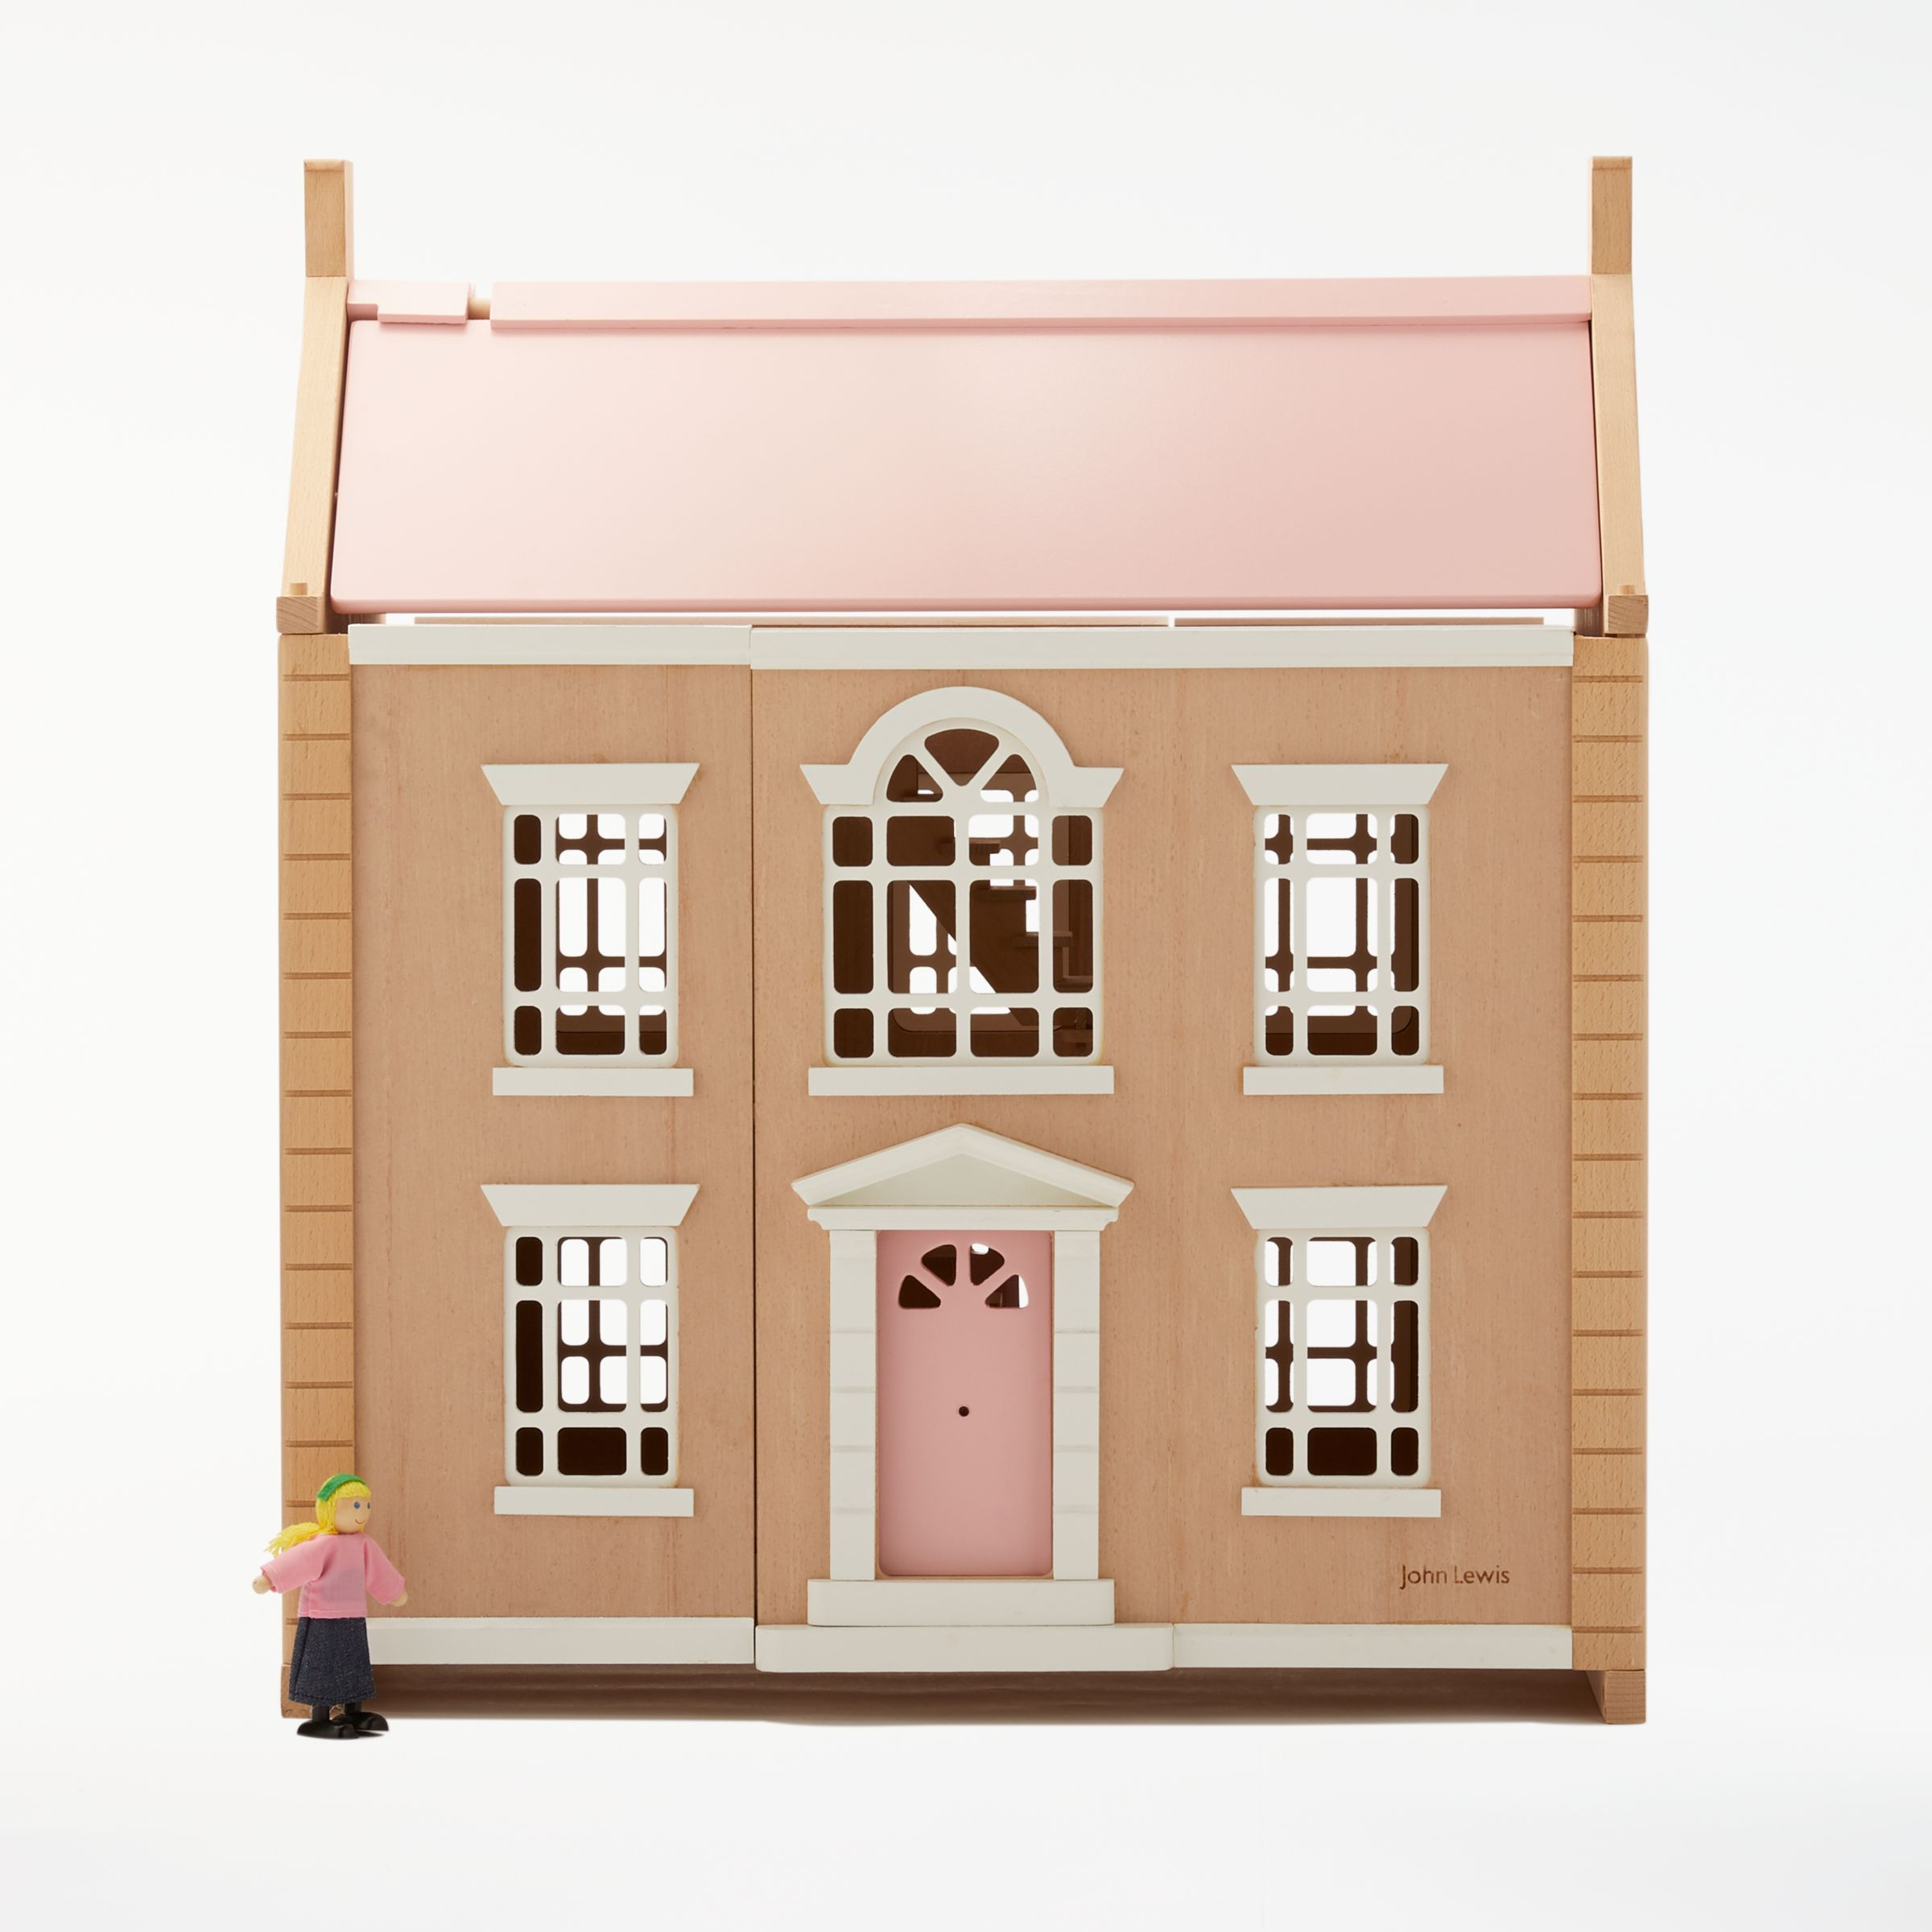 John Lewis Doll's House, Leckford House